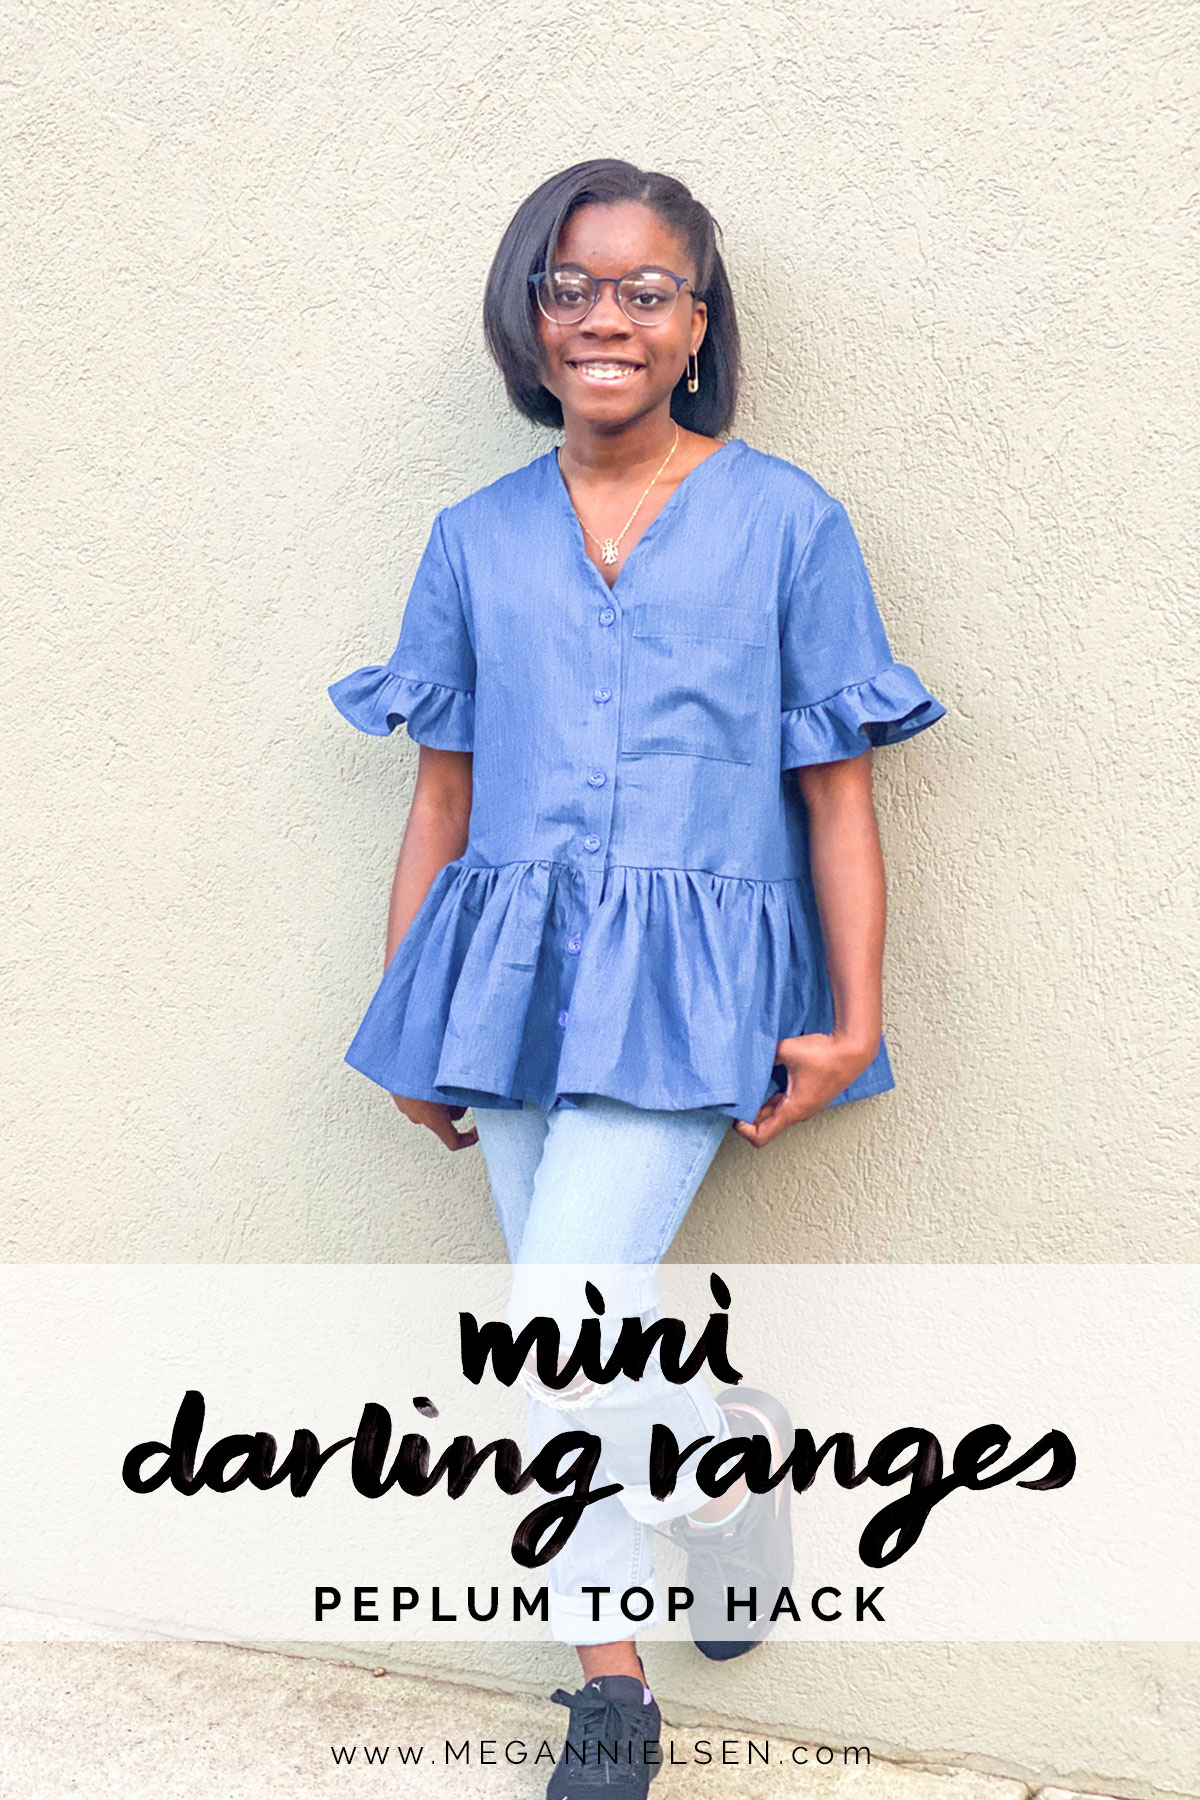 Time for a peplum top hack for Mini Darling Ranges!